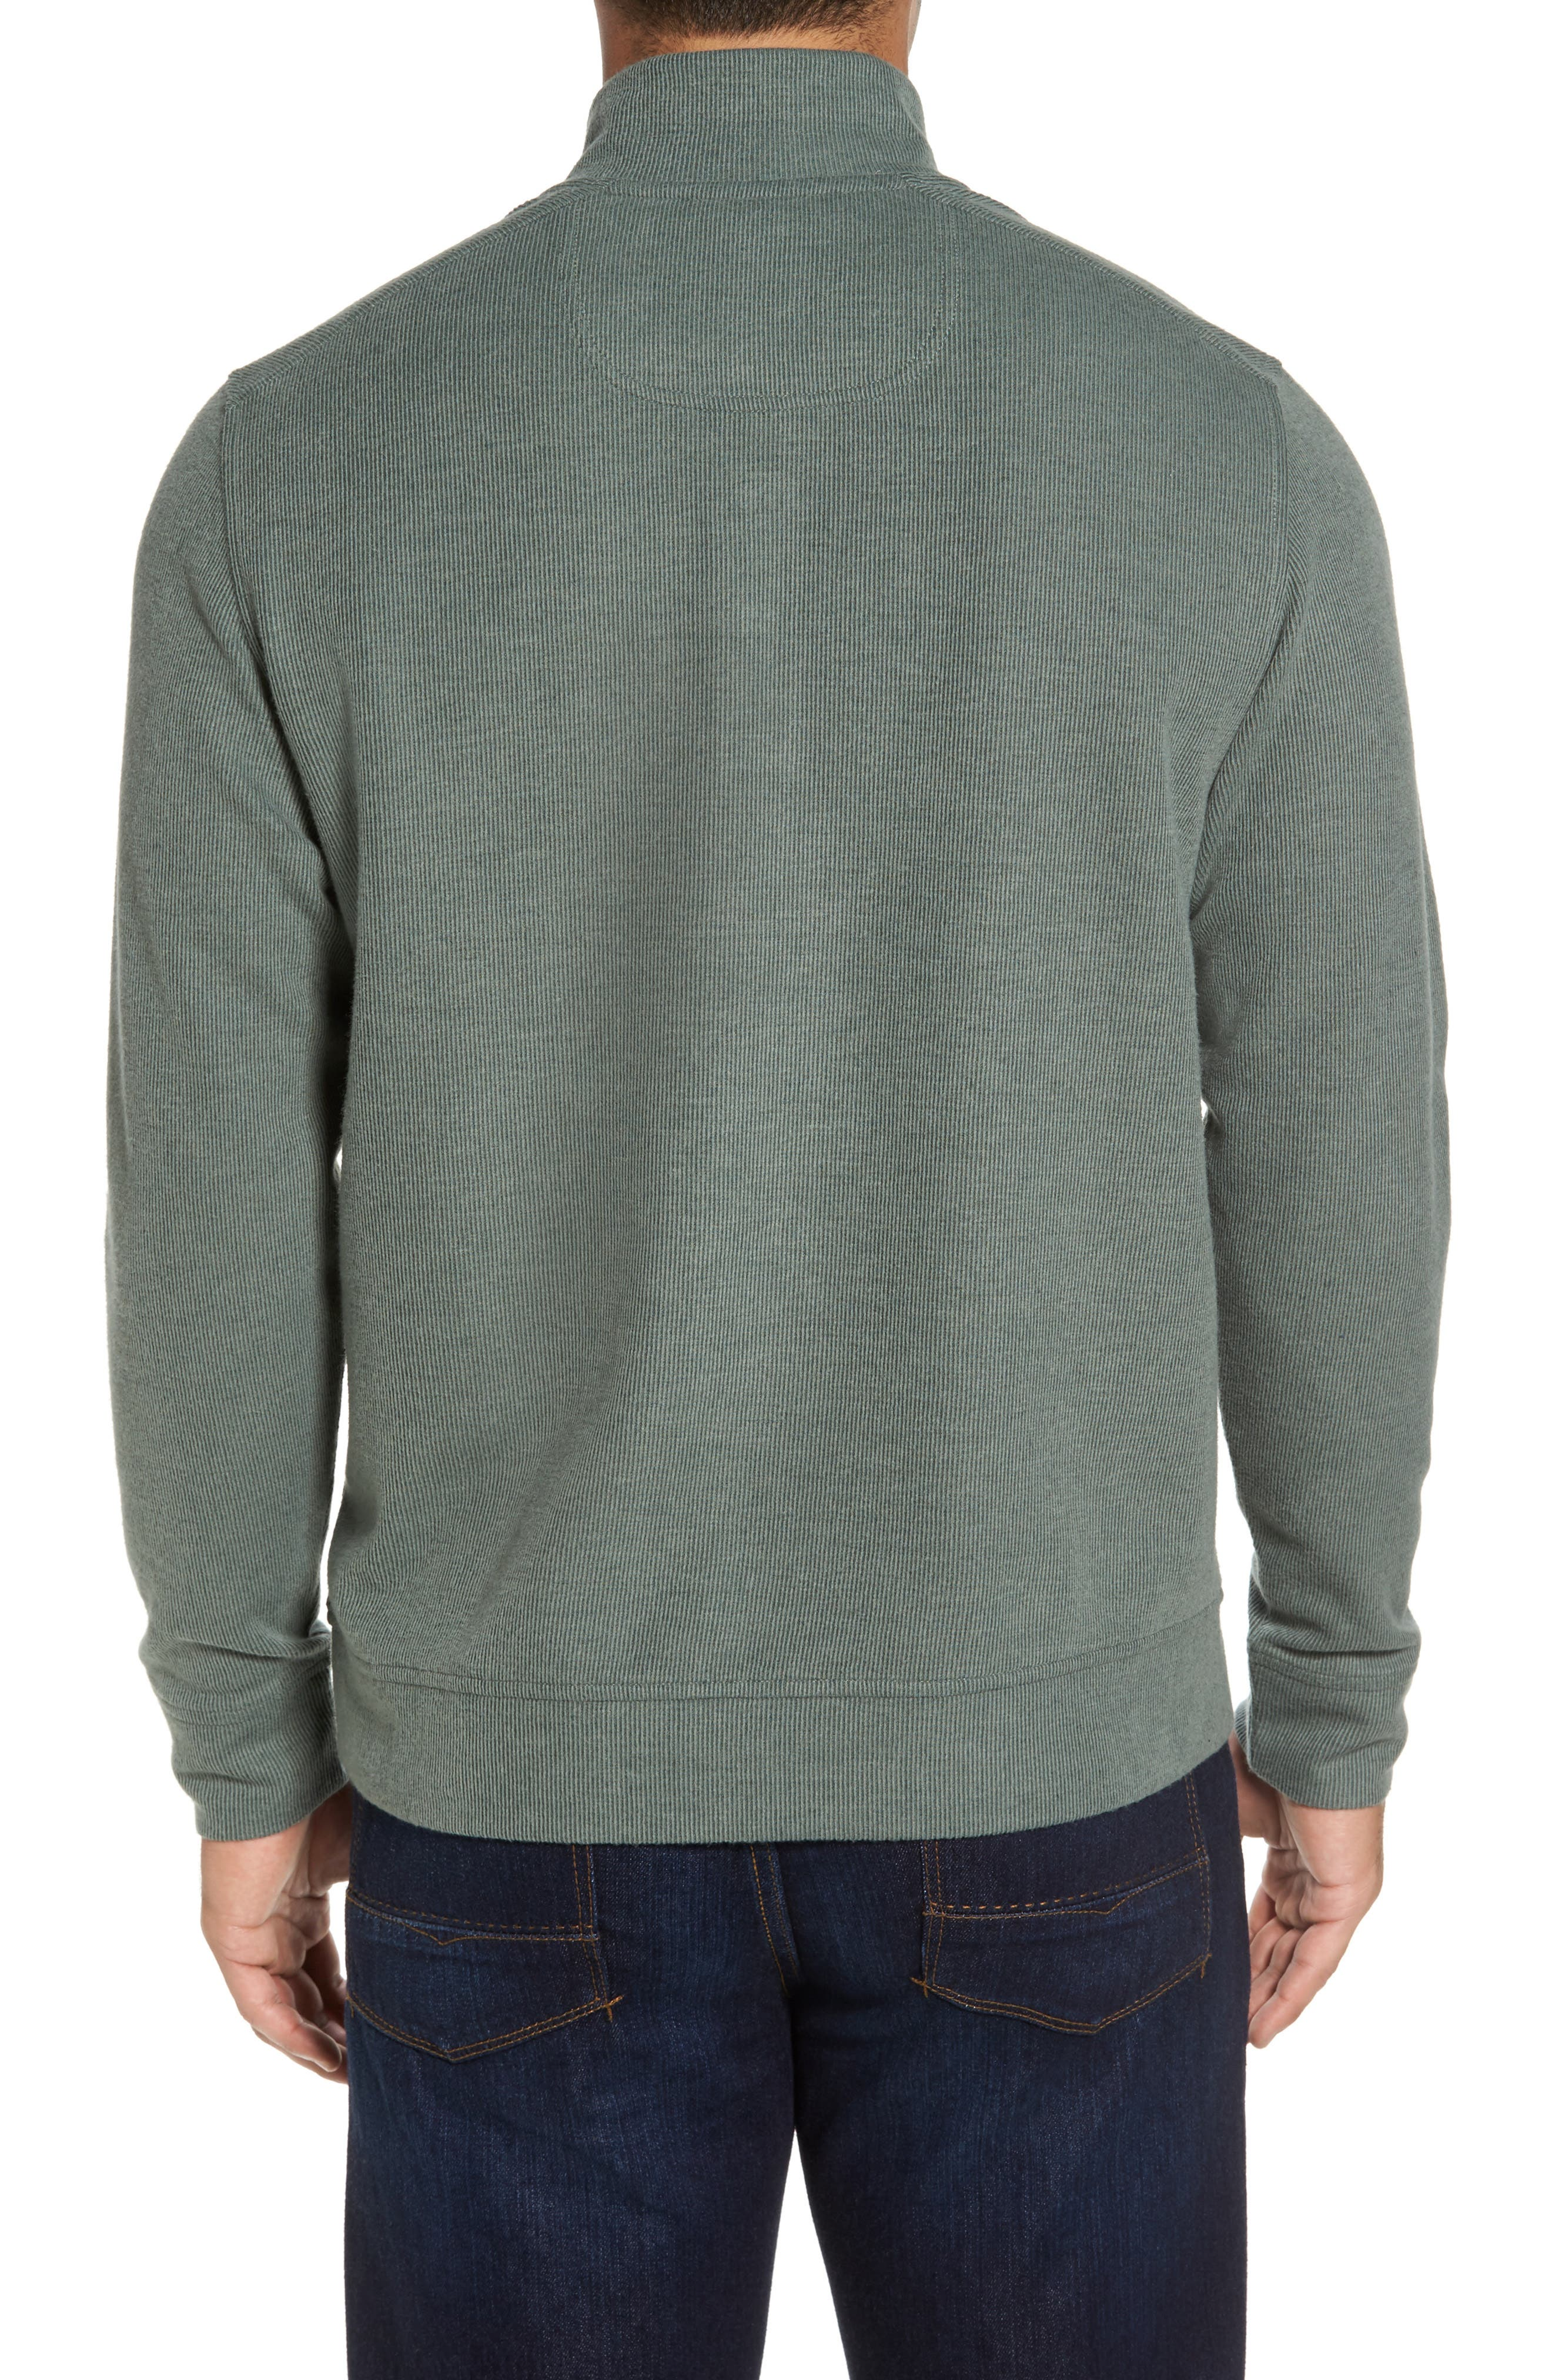 Cold Springs Snap Mock Neck Sweater,                             Alternate thumbnail 10, color,